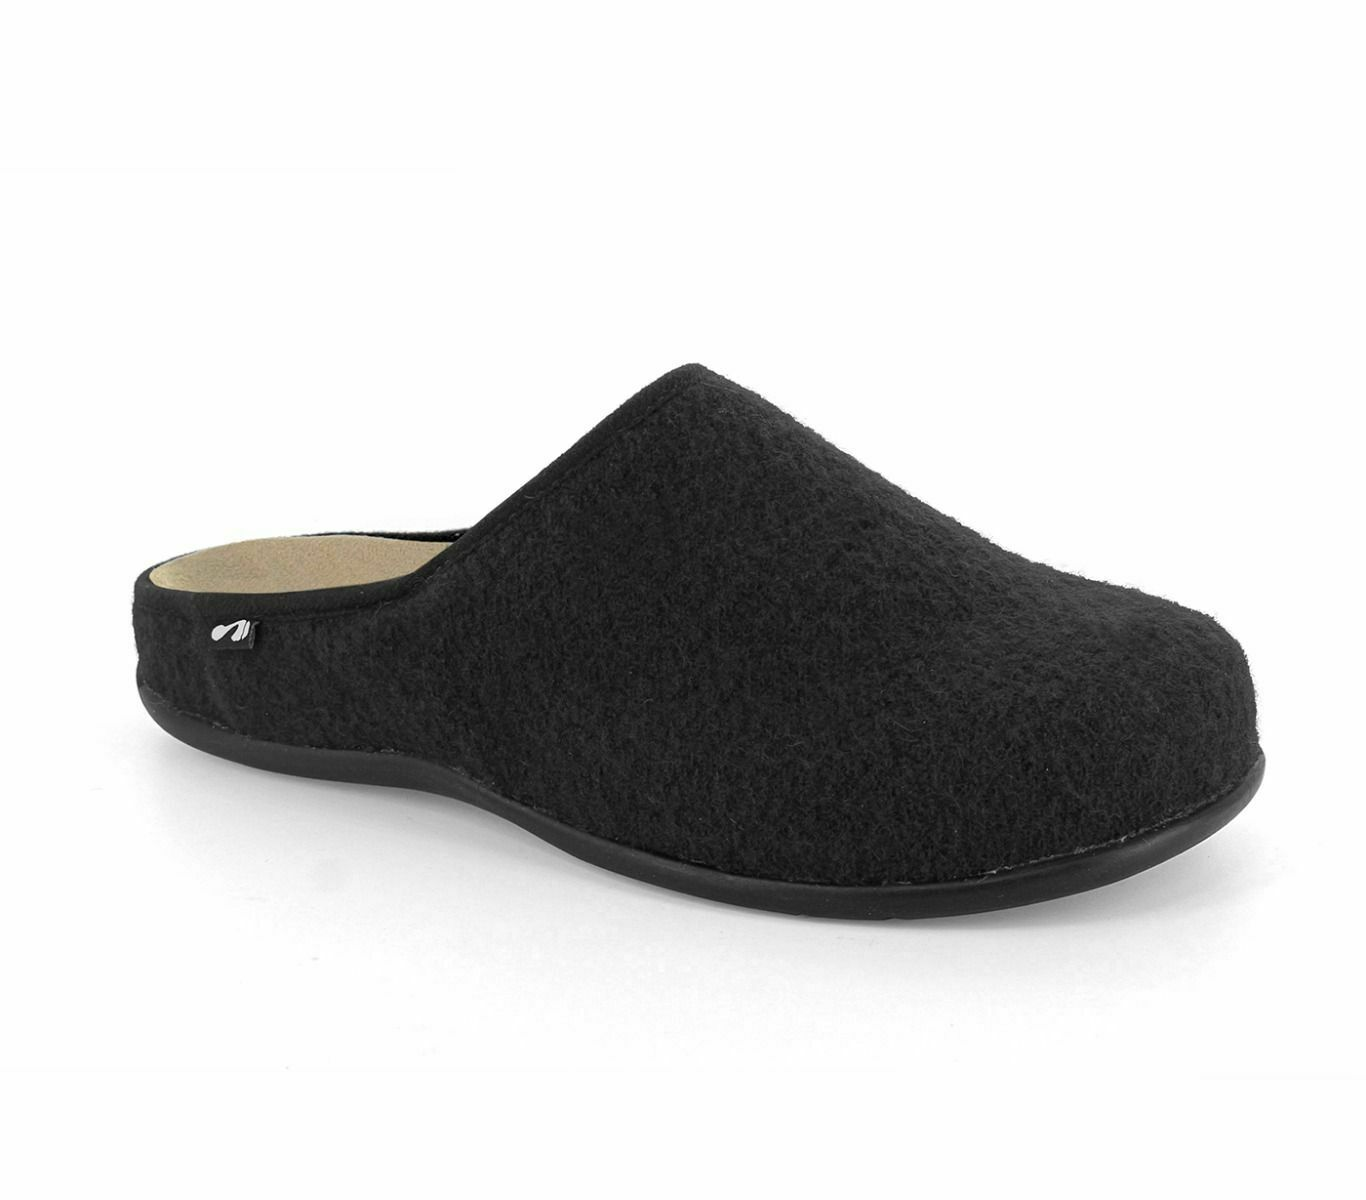 Slipper Strive Vienna Slip On Arch Support Comfy Sole Orthotic Home Wear Shoe